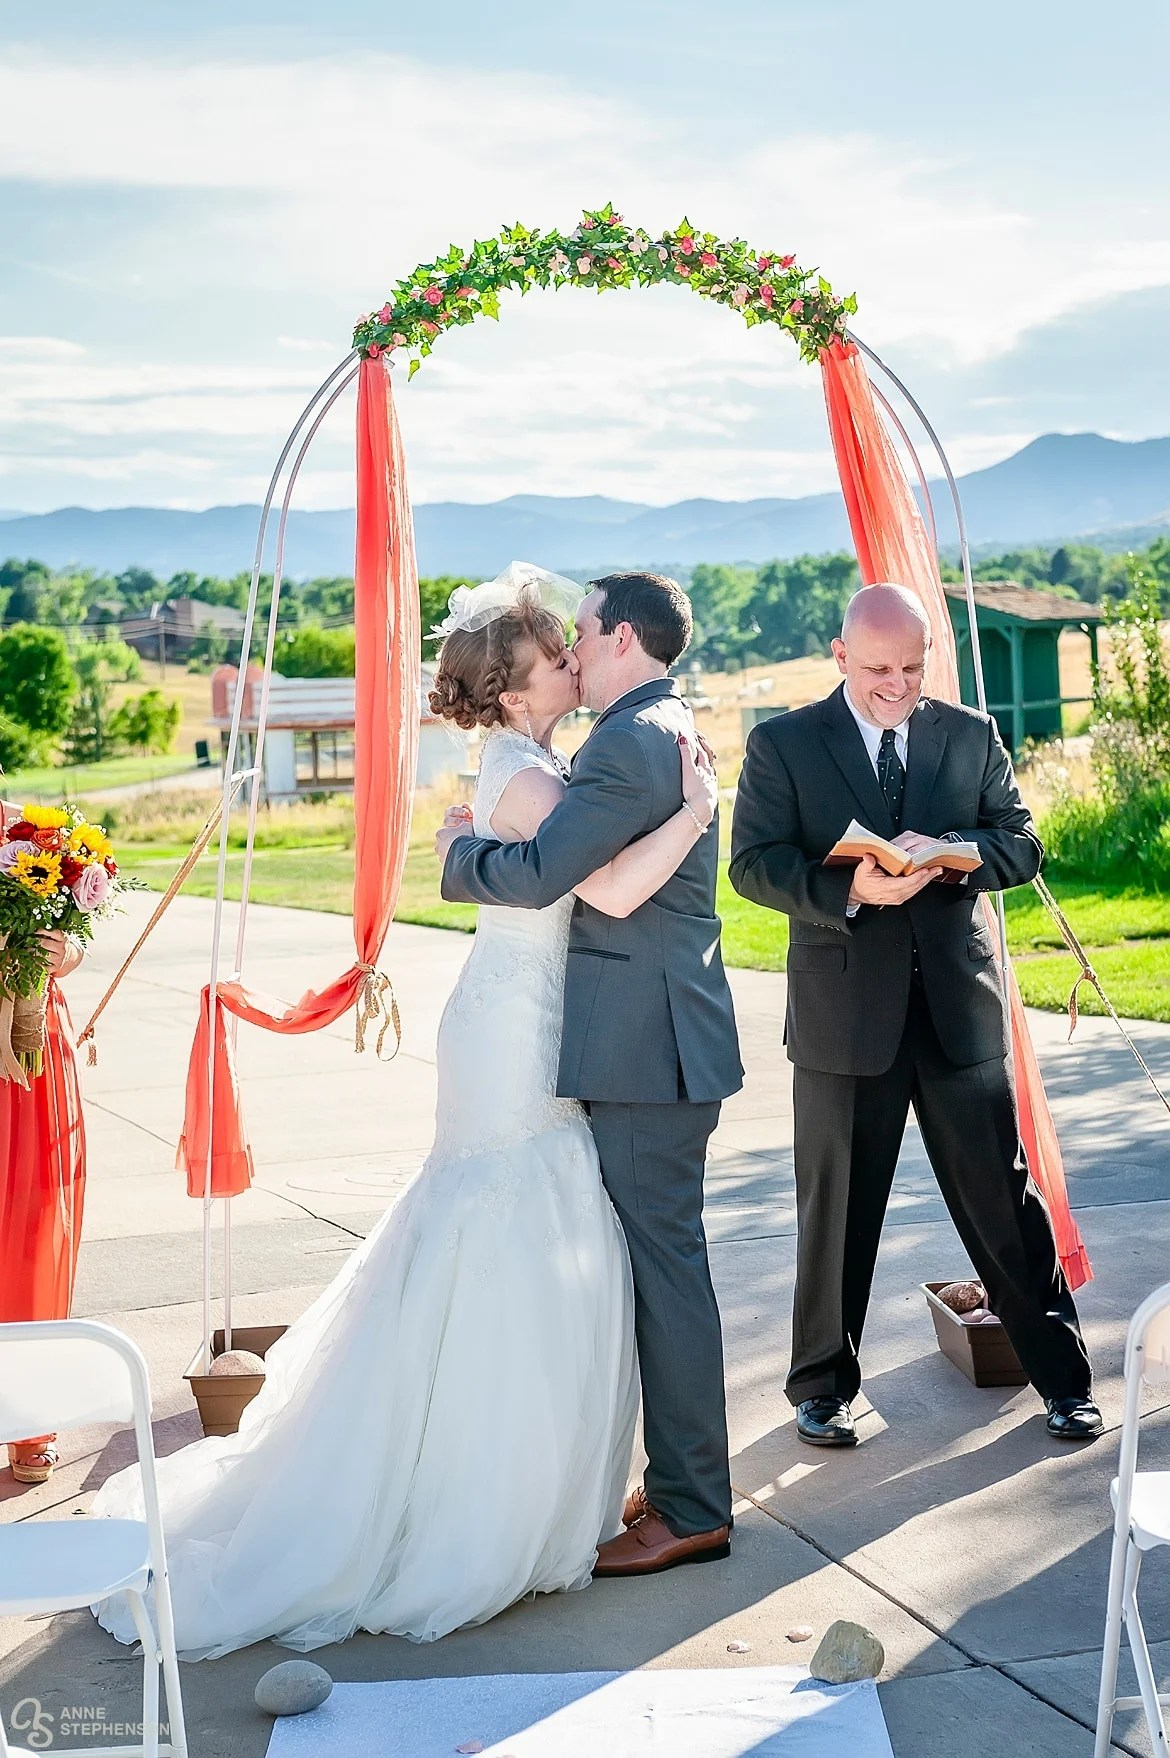 The kiss under the arbor at the Lakewood Heritage Center, Lakewood, Colorado.